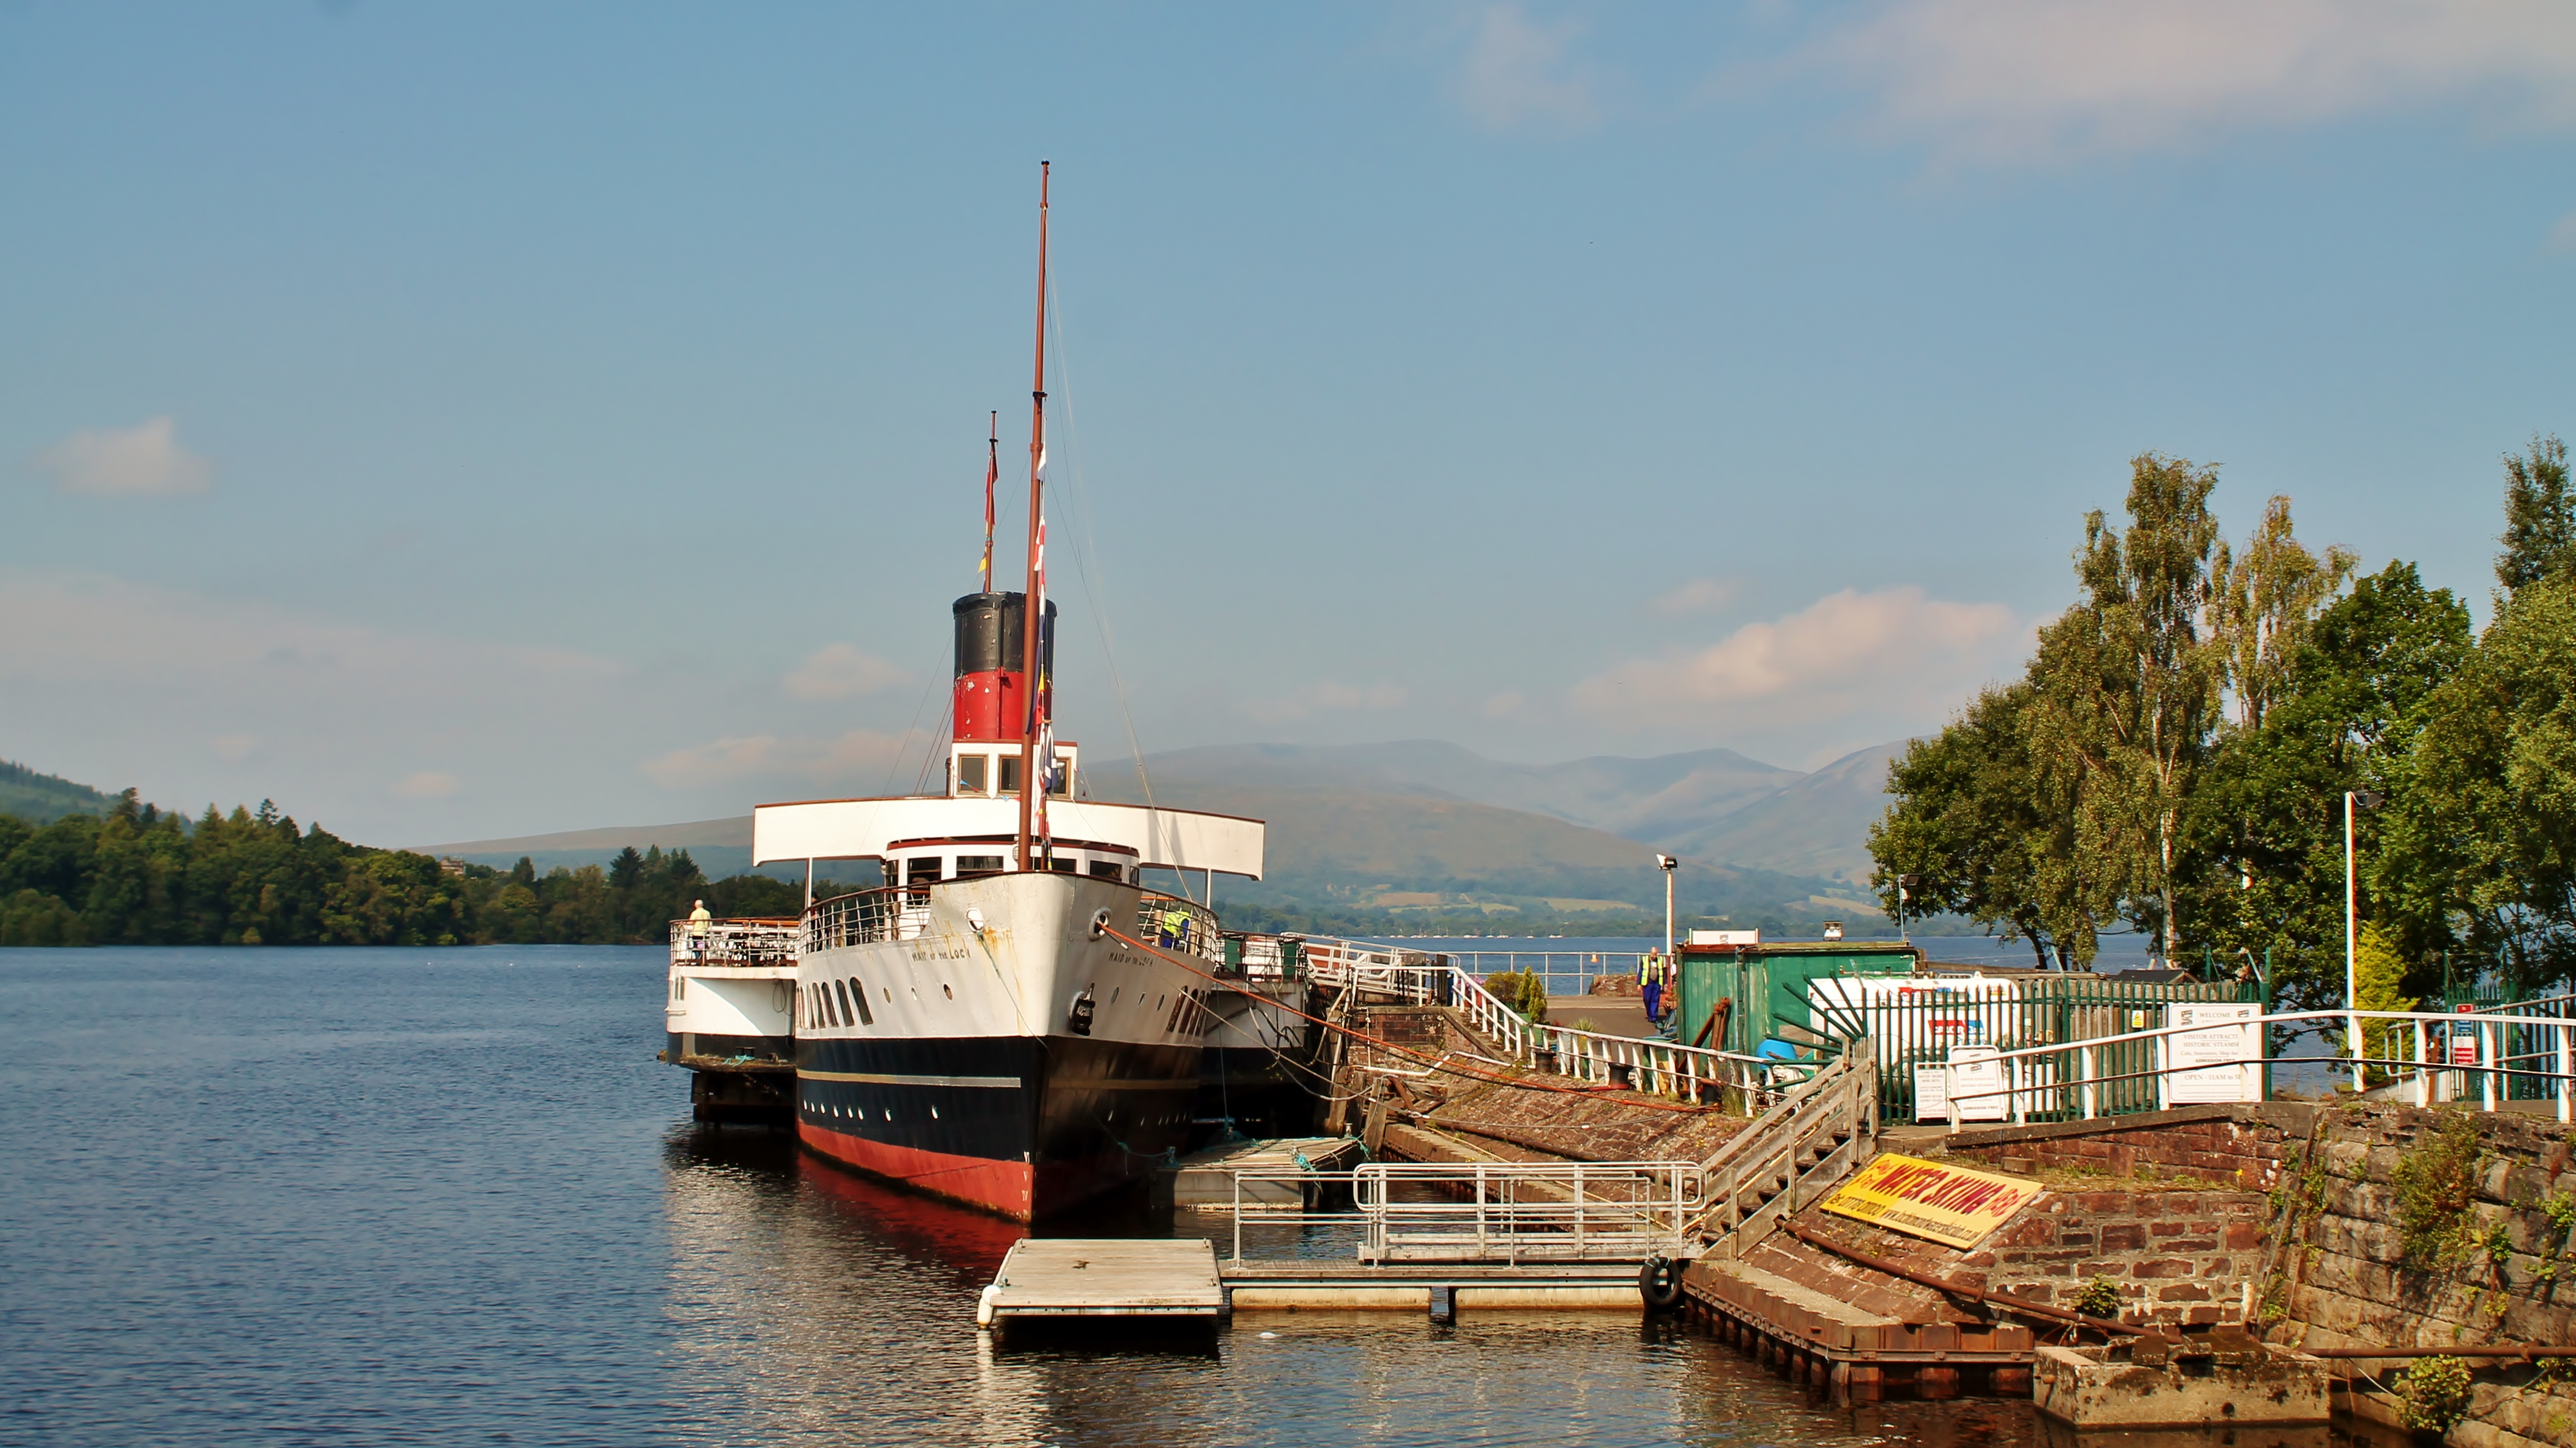 Maid of the Loch as she is now